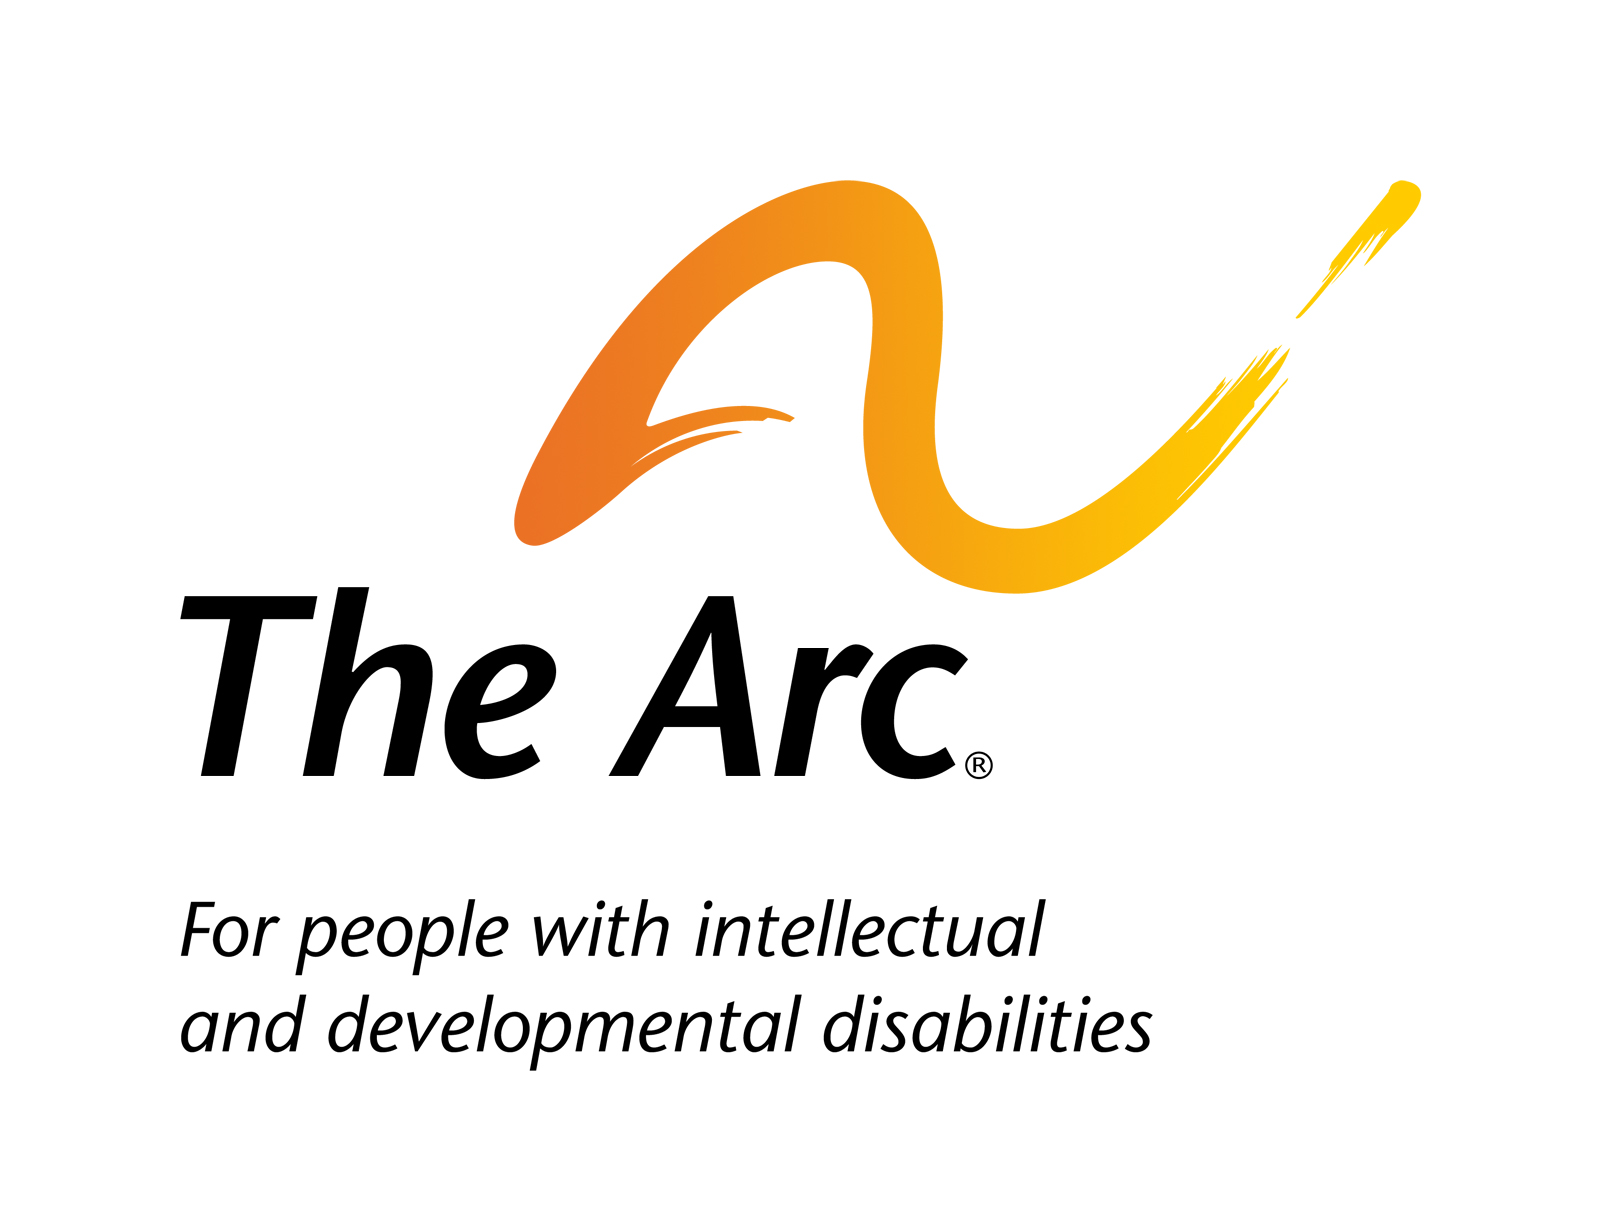 The Arc - For people with intellectual and developmental disabilities